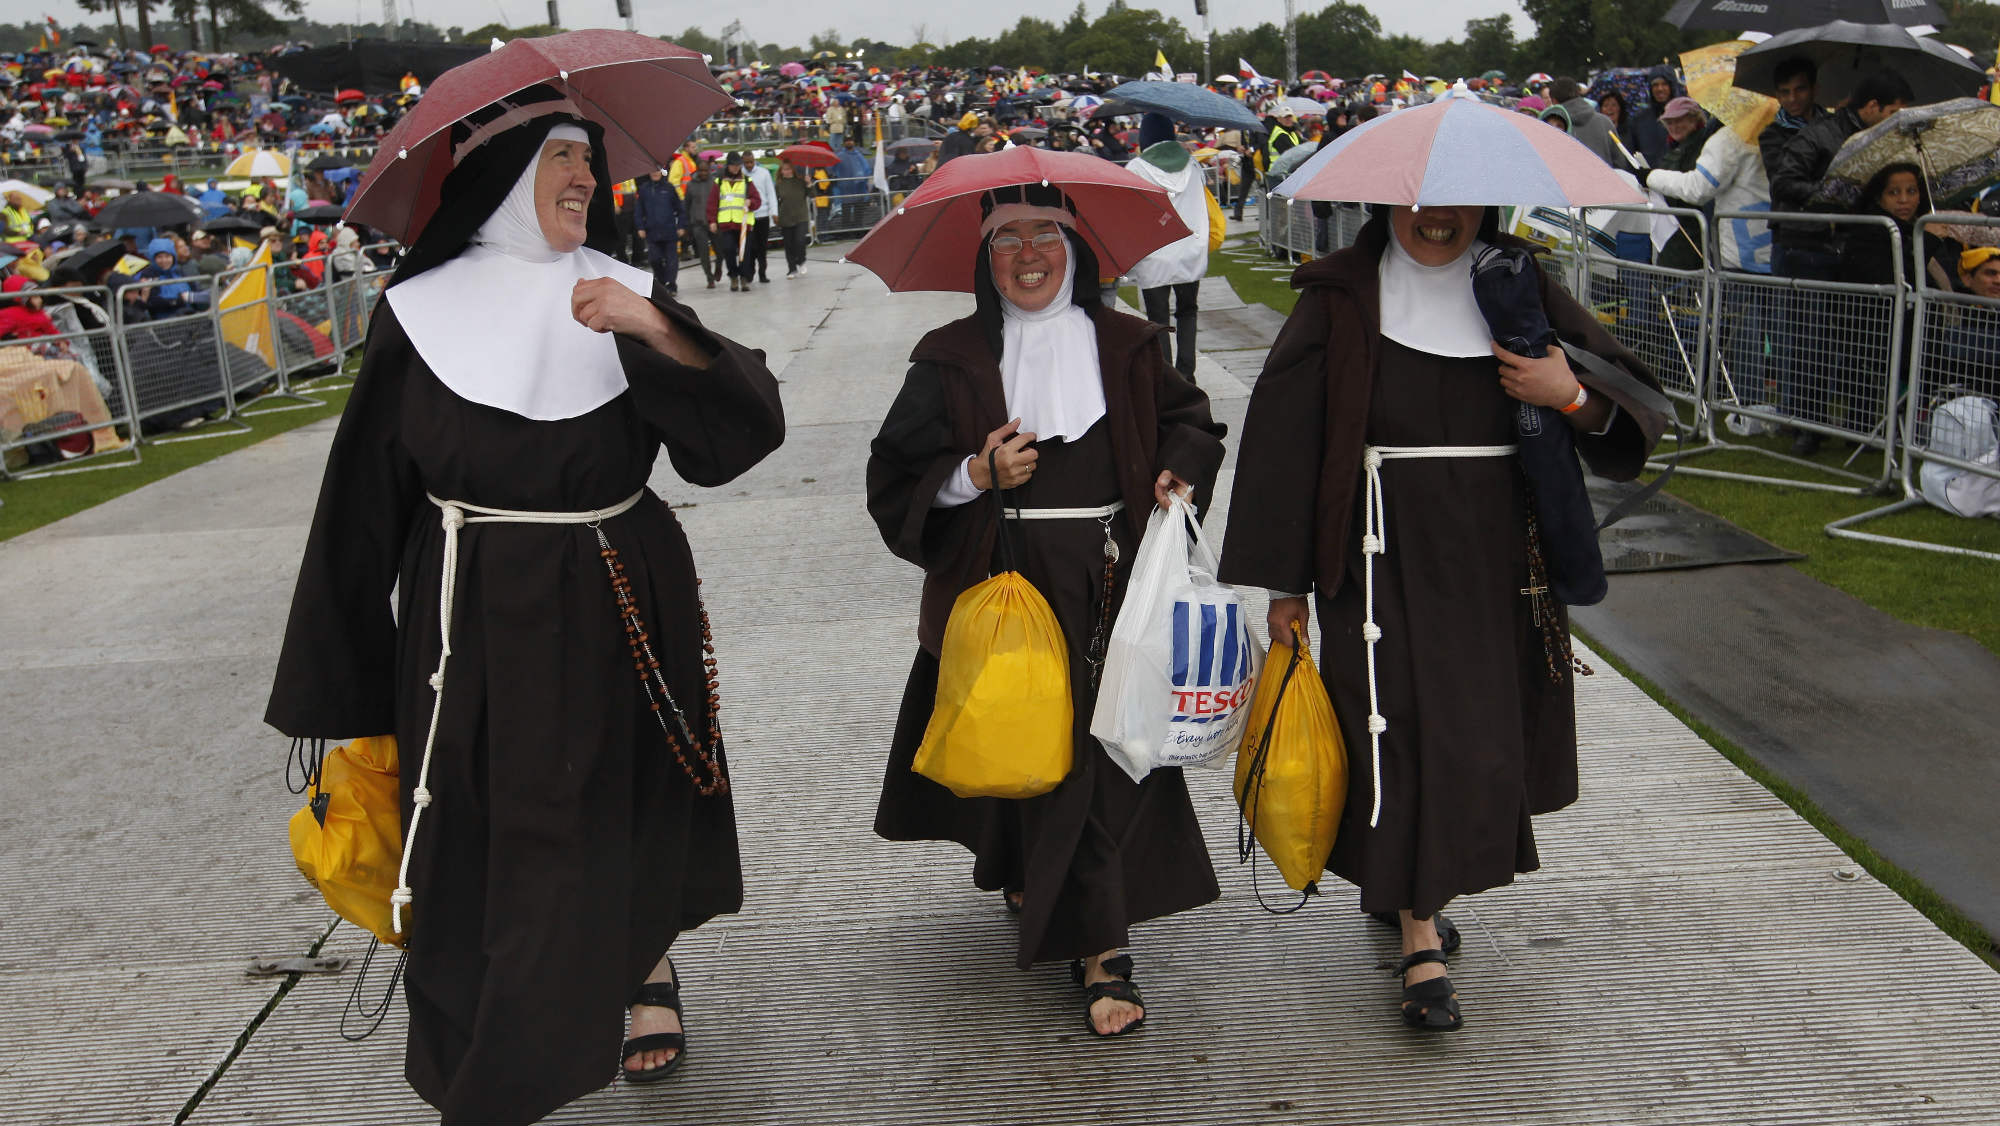 Nuns wear umbrella hats against the rain before a beatification Mass for Cardinal John Henry Newman, led by Pope Benedict XVI, at Cofton Park in Birmingham September 19, 2010. The Pope is on the final day of a four day visit to England and Scotland. REUTERS/Andrew Winning (BRITAIN - Tags: POLITICS RELIGION)